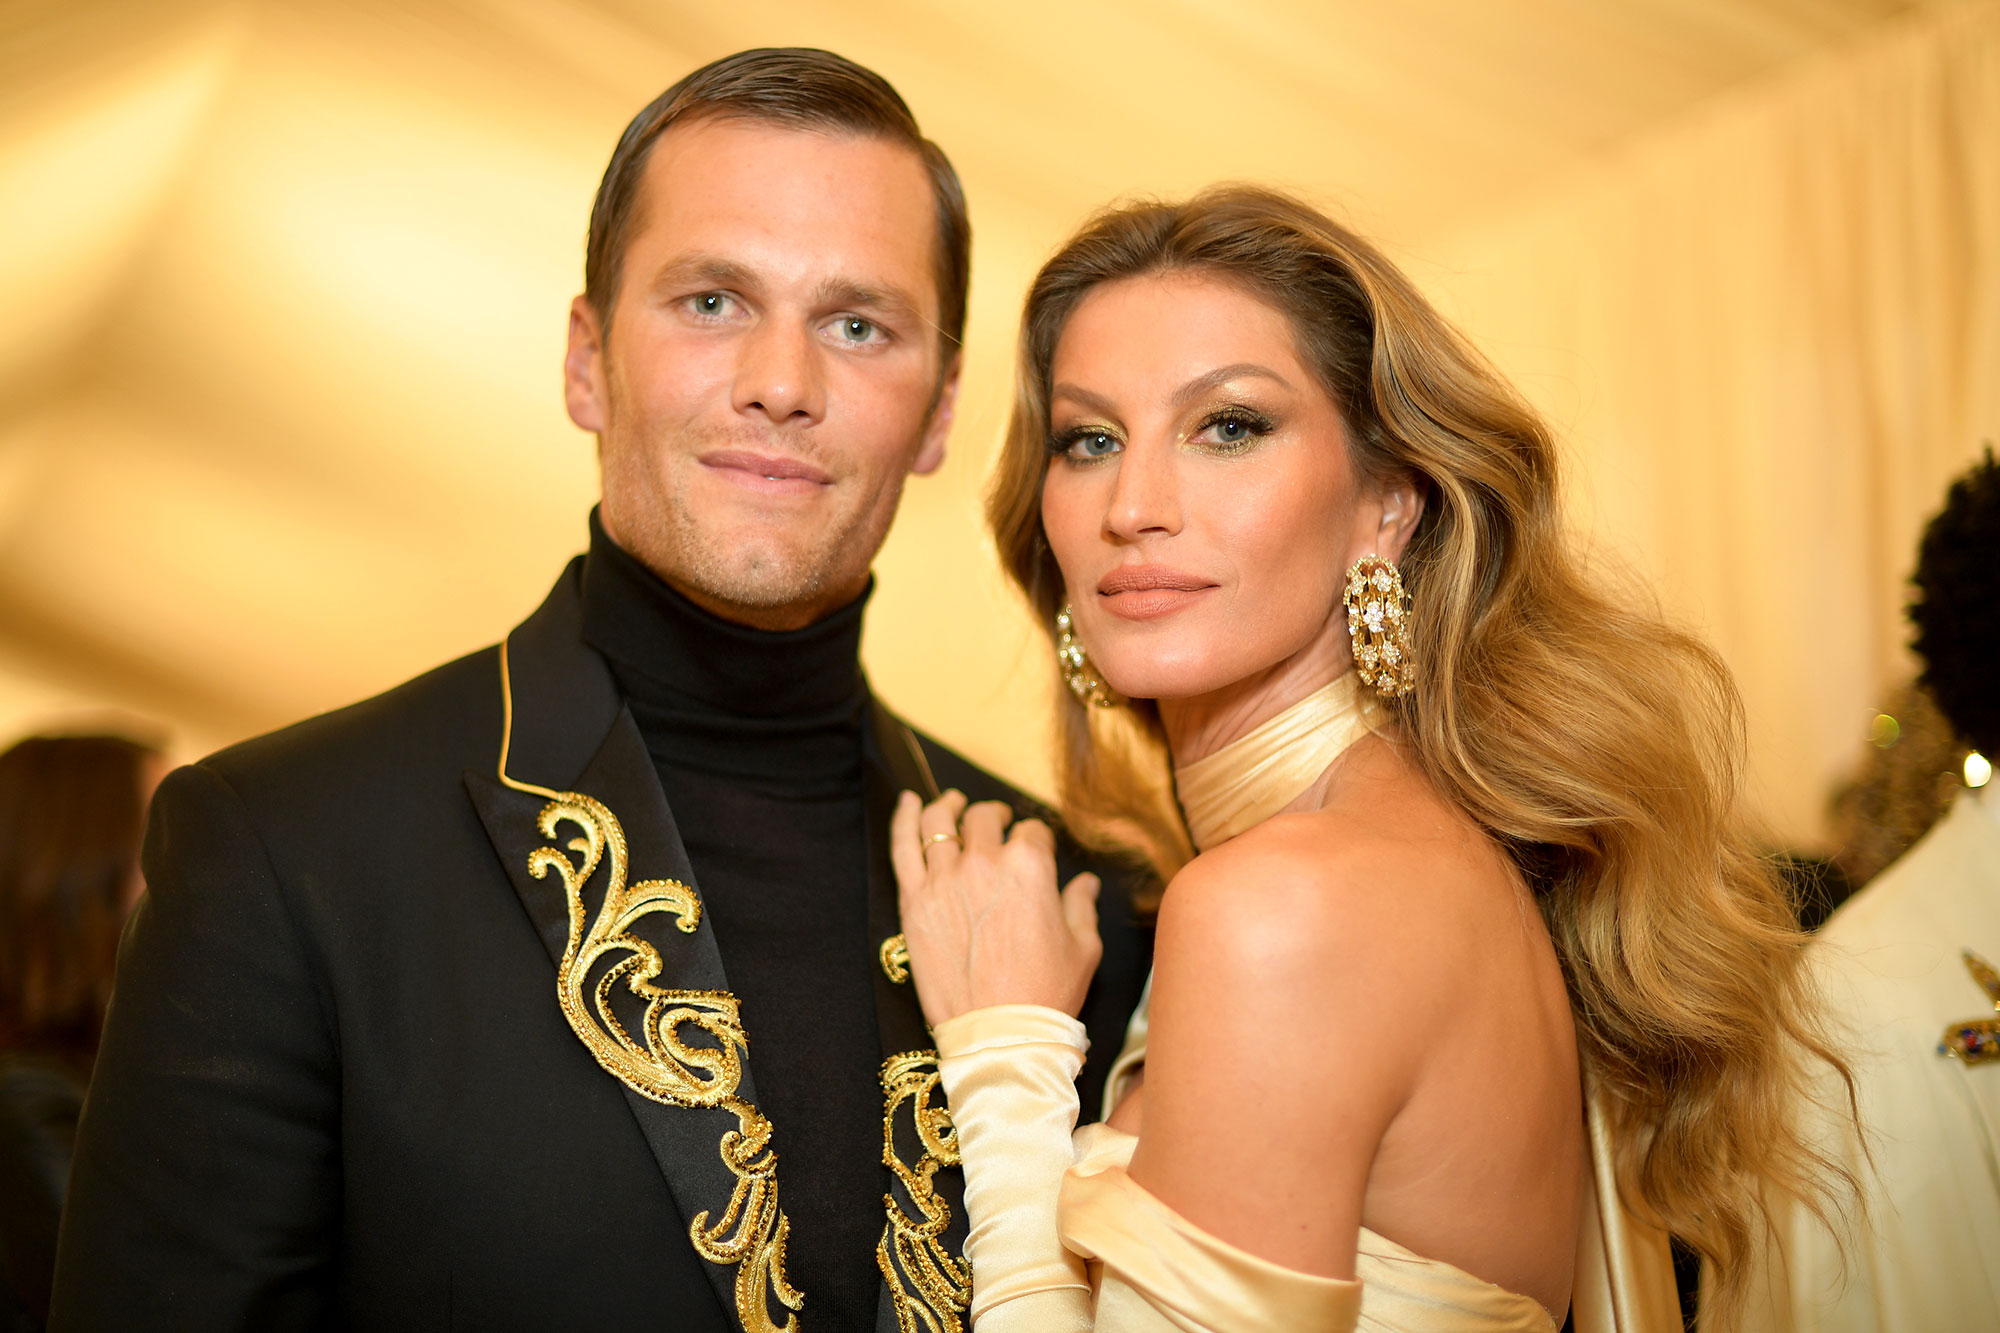 Celebrity Couples Who Got Engaged and Married in the Same Year - Engaged: January 2009 Married: February 26, 2009 Status: Still married with two children, son Benjamin and daughter Vivian, plus Brady's son John with ex-girlfriend Bridget Moynahan